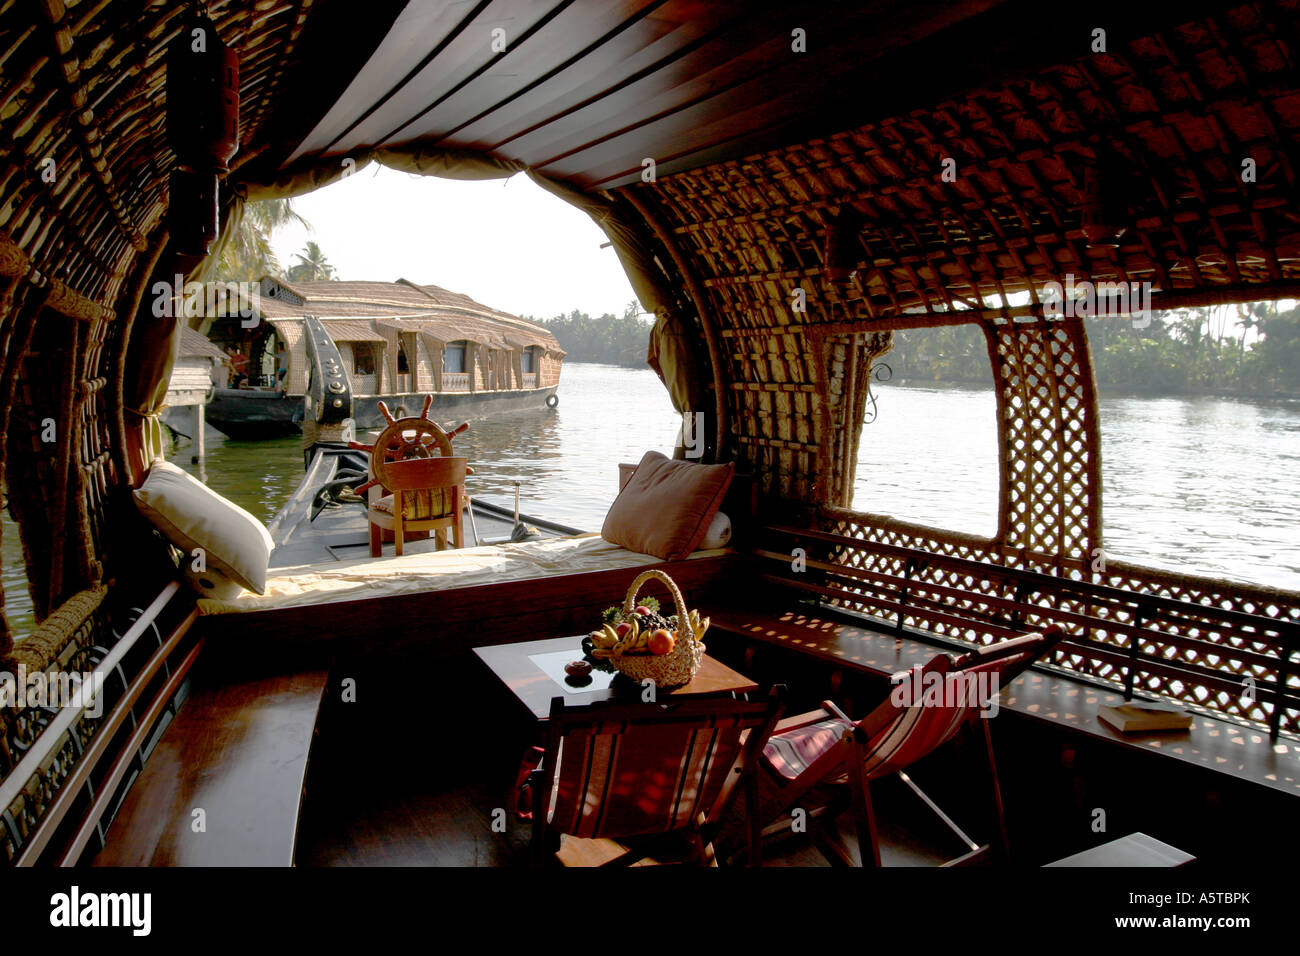 Interior Of A Converted Rice Barge Into A Luxury Houseboat ,Kerala  Backwaters Southern India